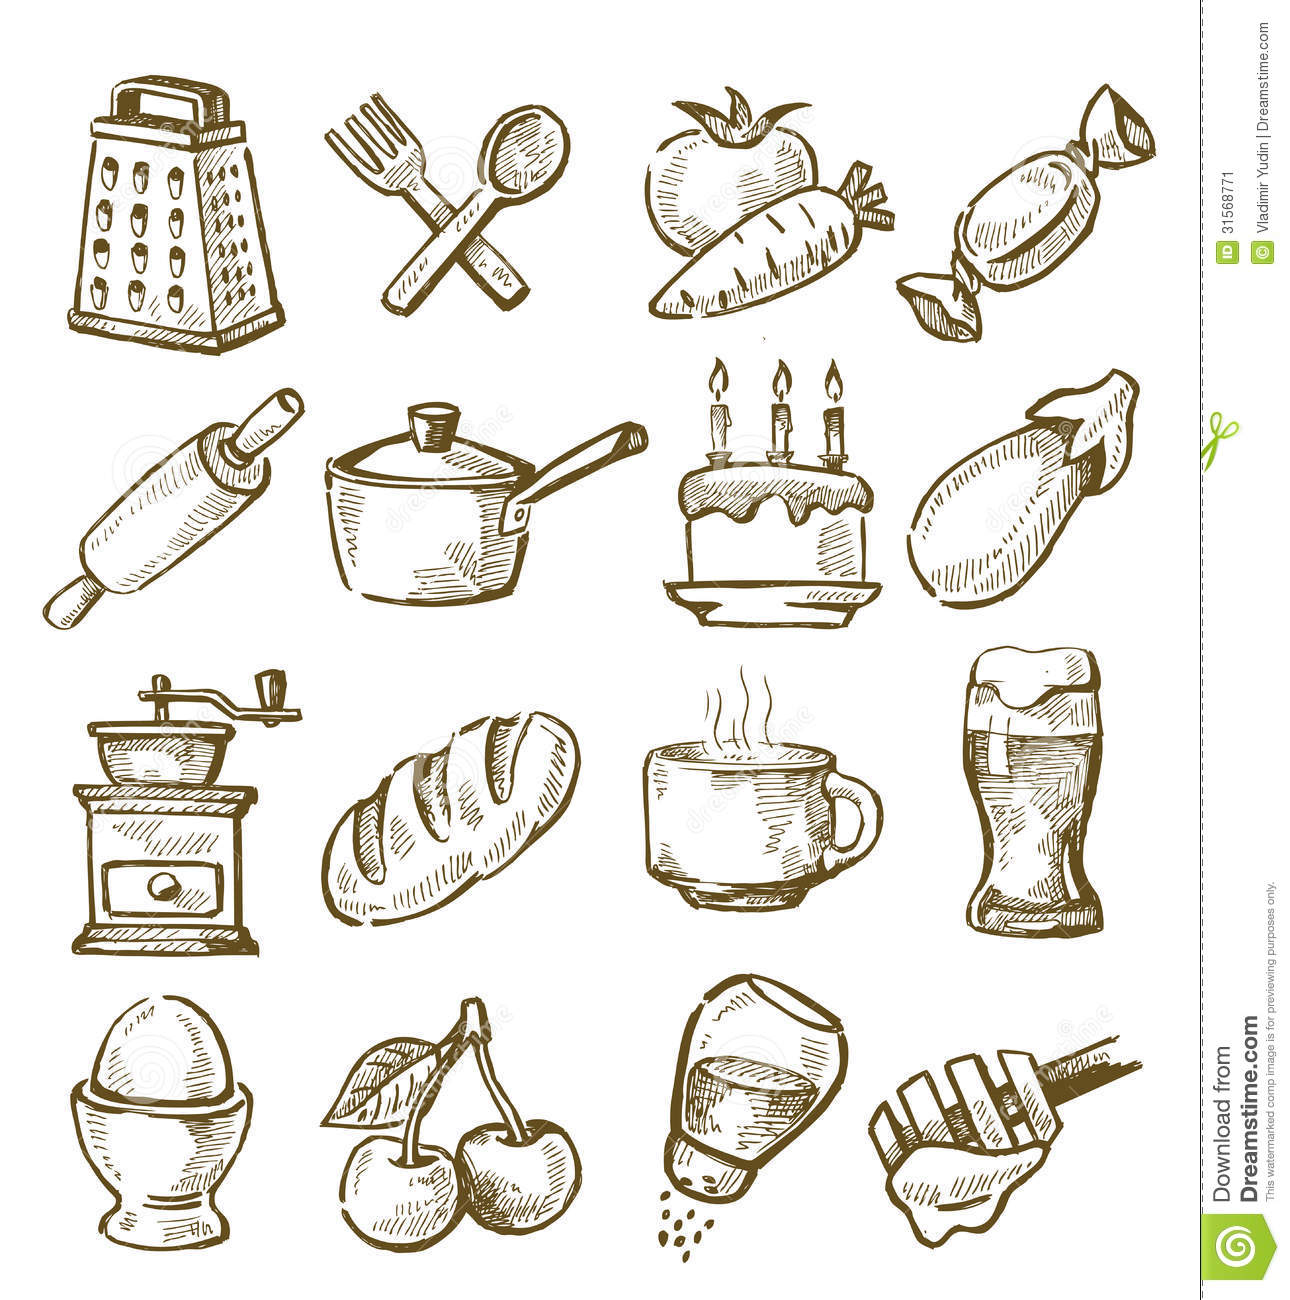 15 Kitchen Utensils Sketch : Hand Drawn Kitchen Stock Image - Image: 31568771